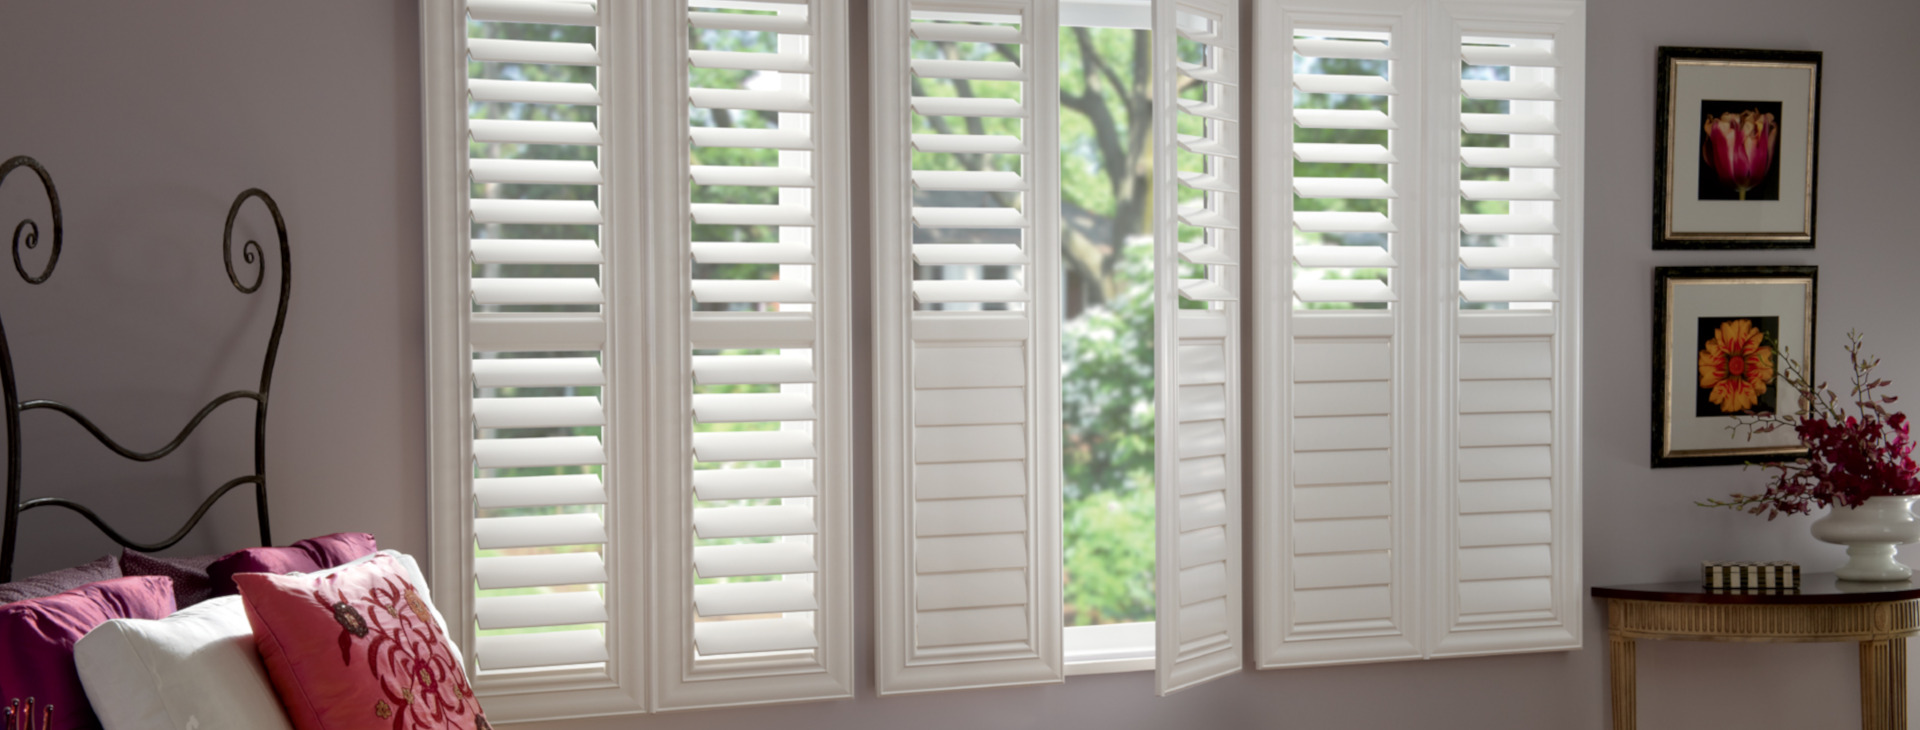 Mr Window Blinds Of St Augustine Blinds Shades Shutters